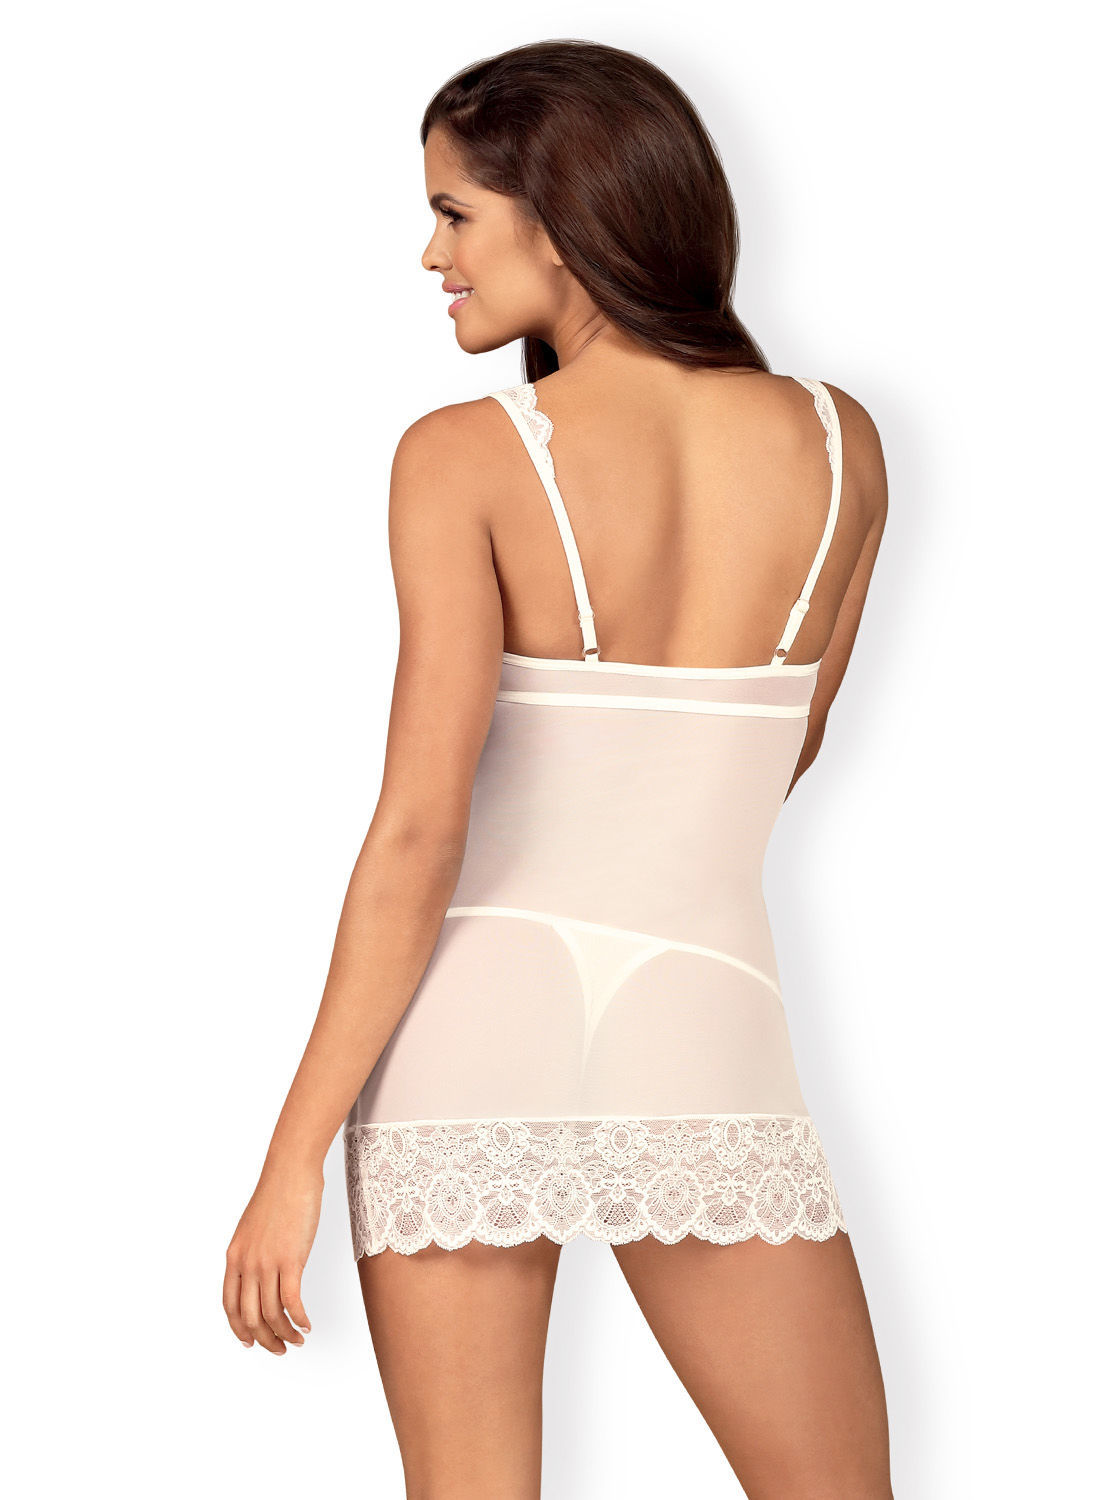 Image de 853-CHE - Chemise & Matching Thong (in Black or White) - L/XL